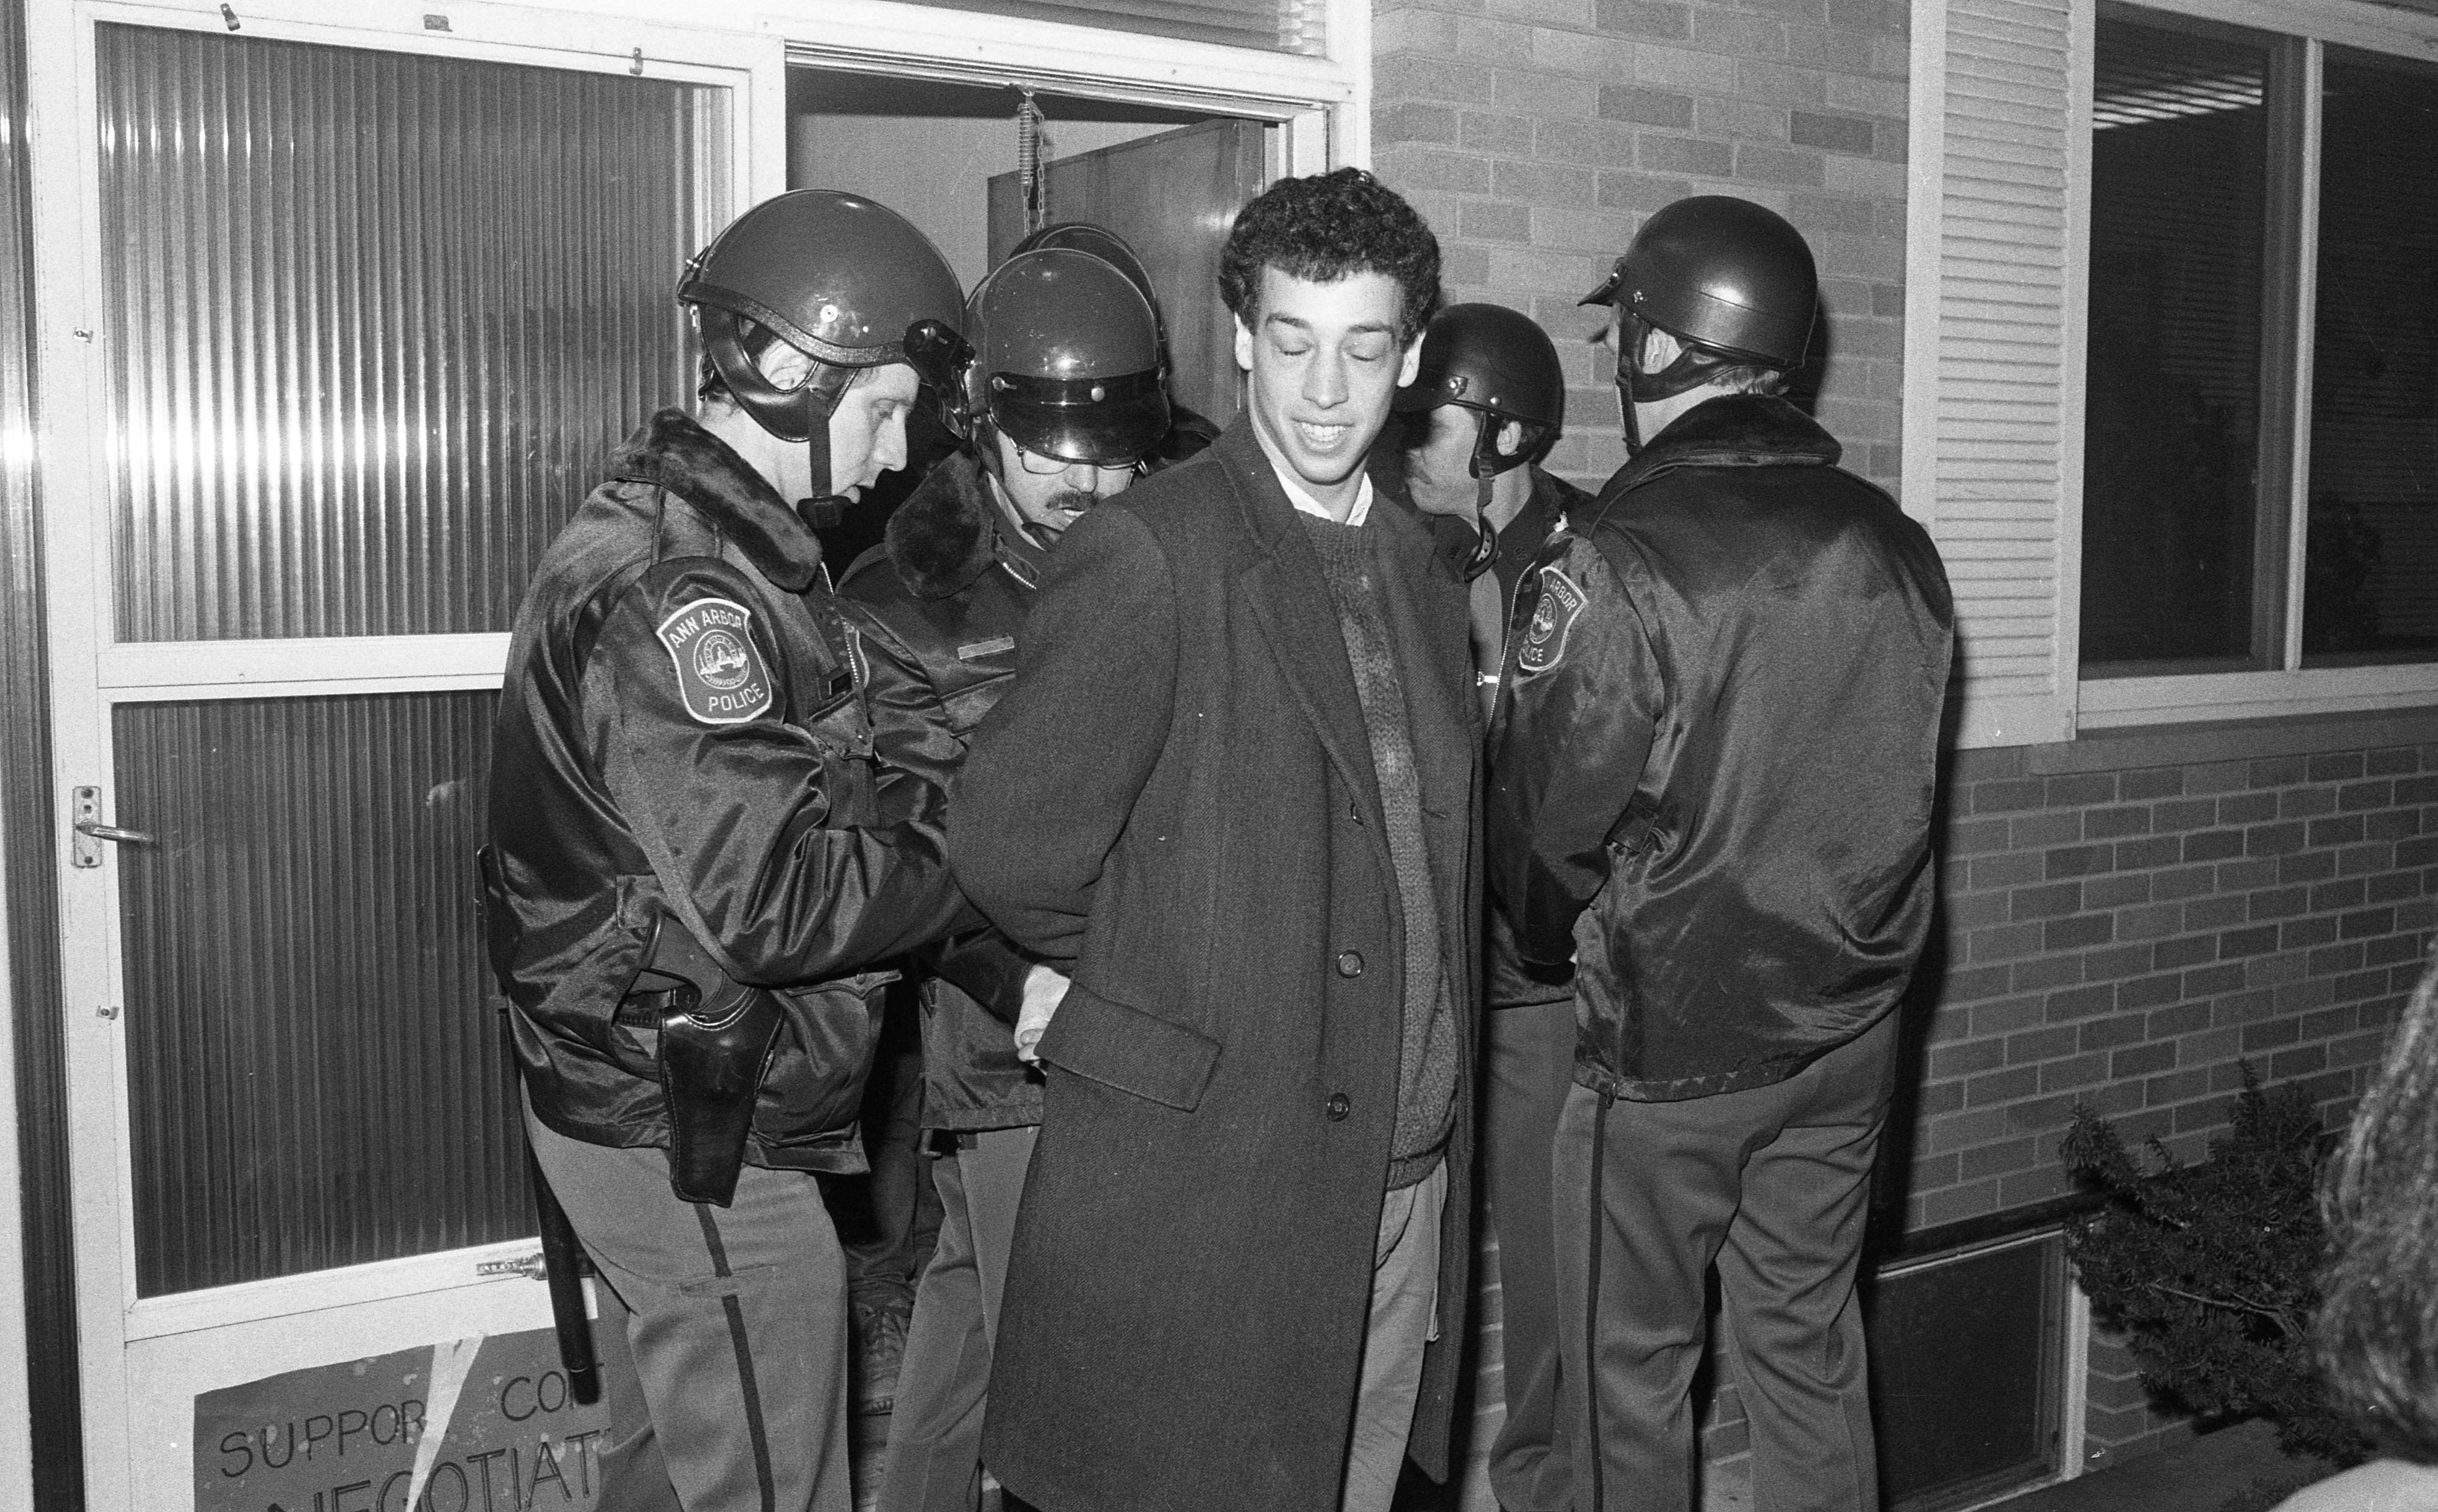 Ann Arbor Police Arrest Protesters at U.S. Rep. Carl Pursell's Office, March 1986 image